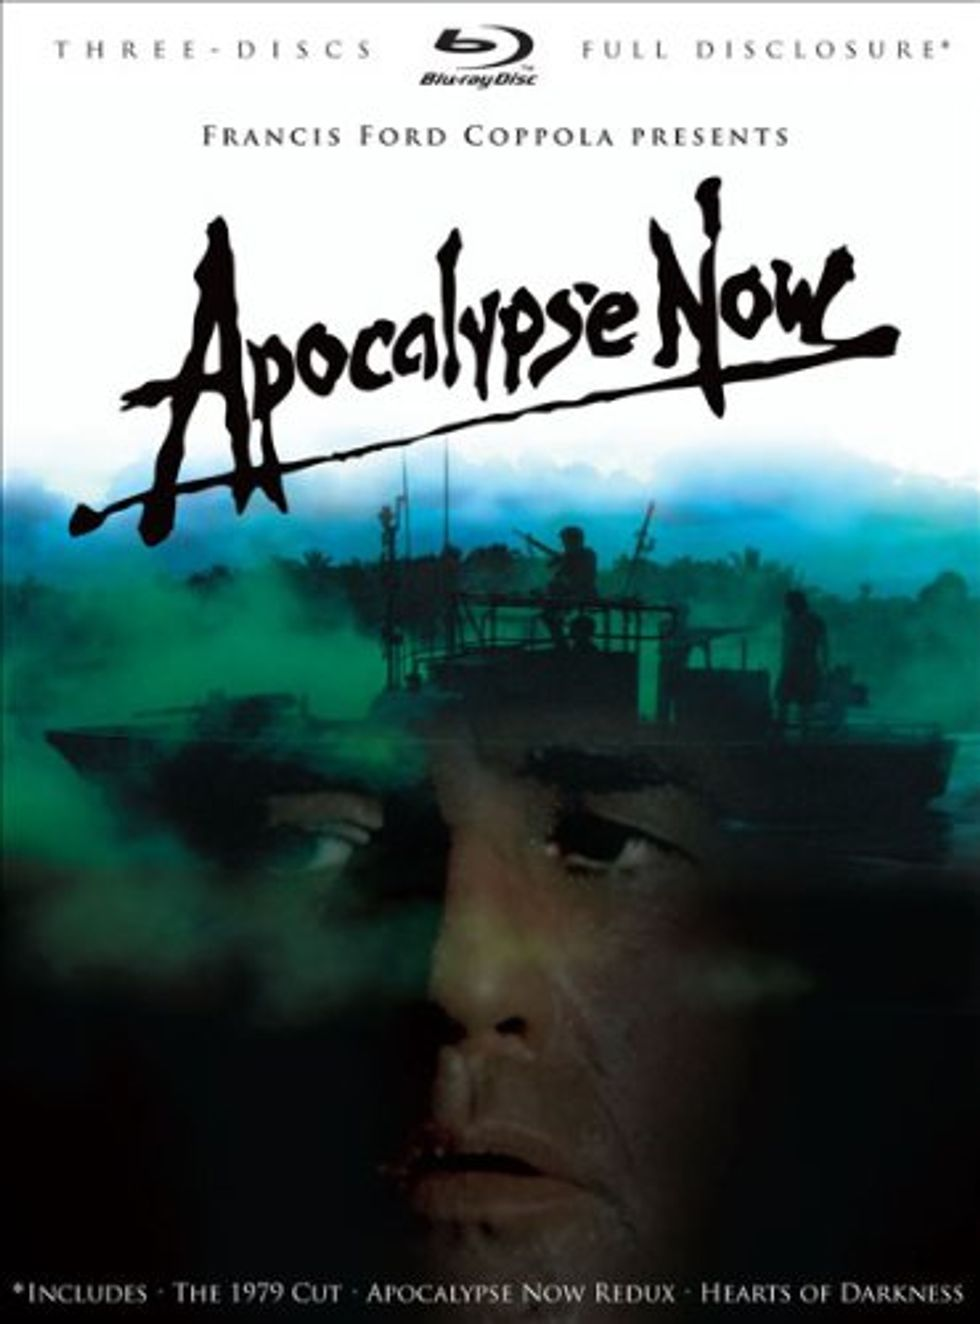 Apoclypse Now: Full Disclosure Edition Out Now On Blu-ray